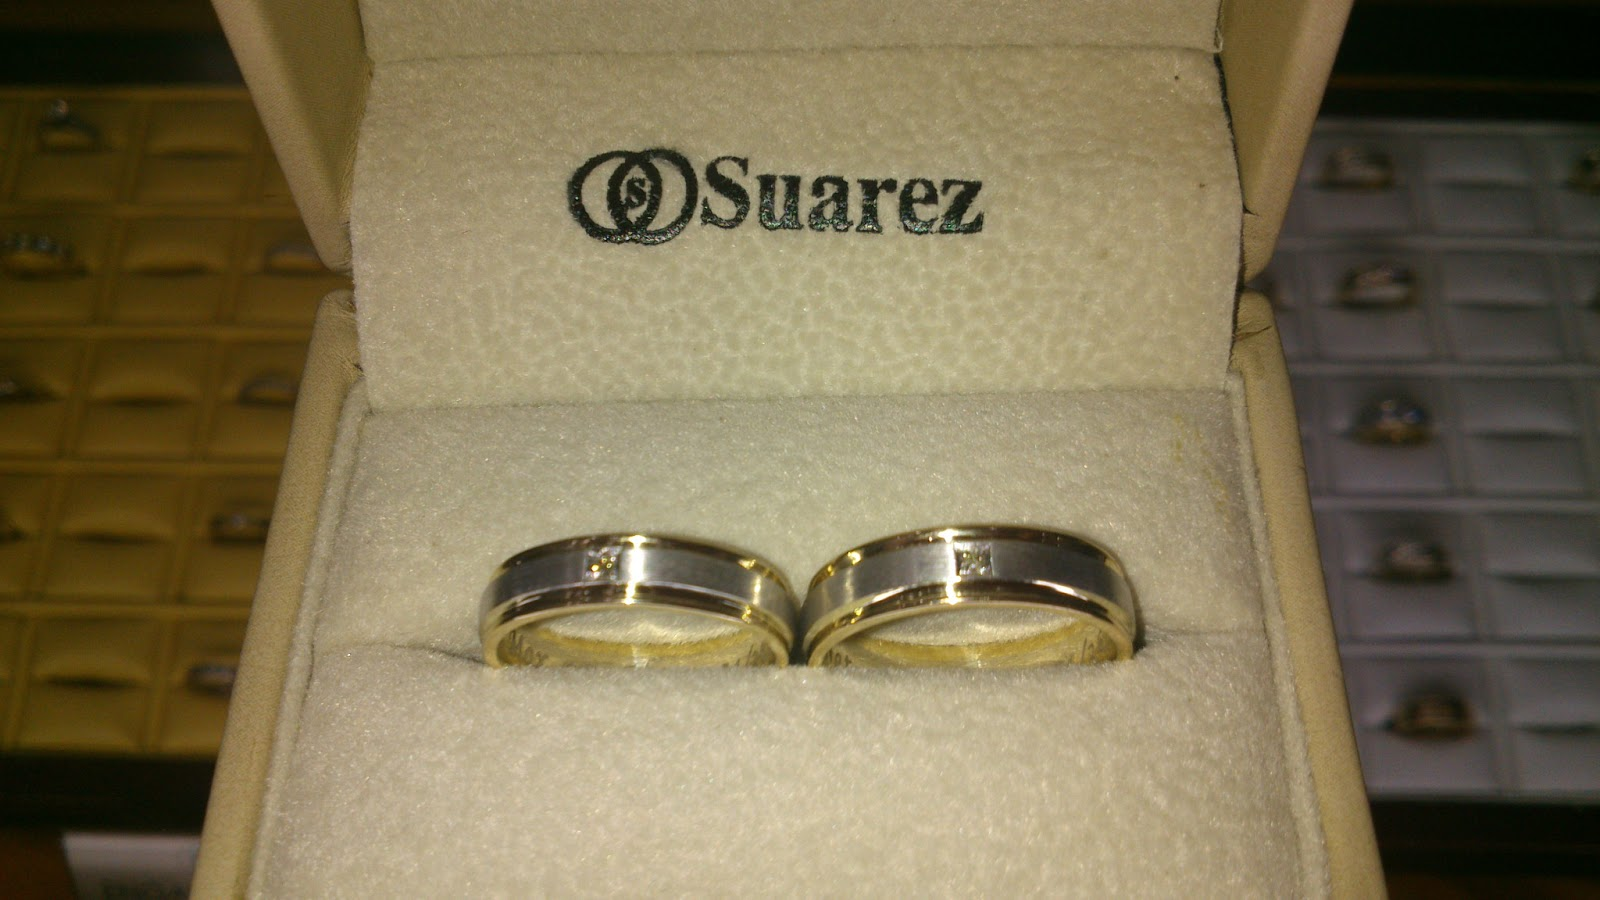 Charming new wedding rings Suarez wedding rings hw flat